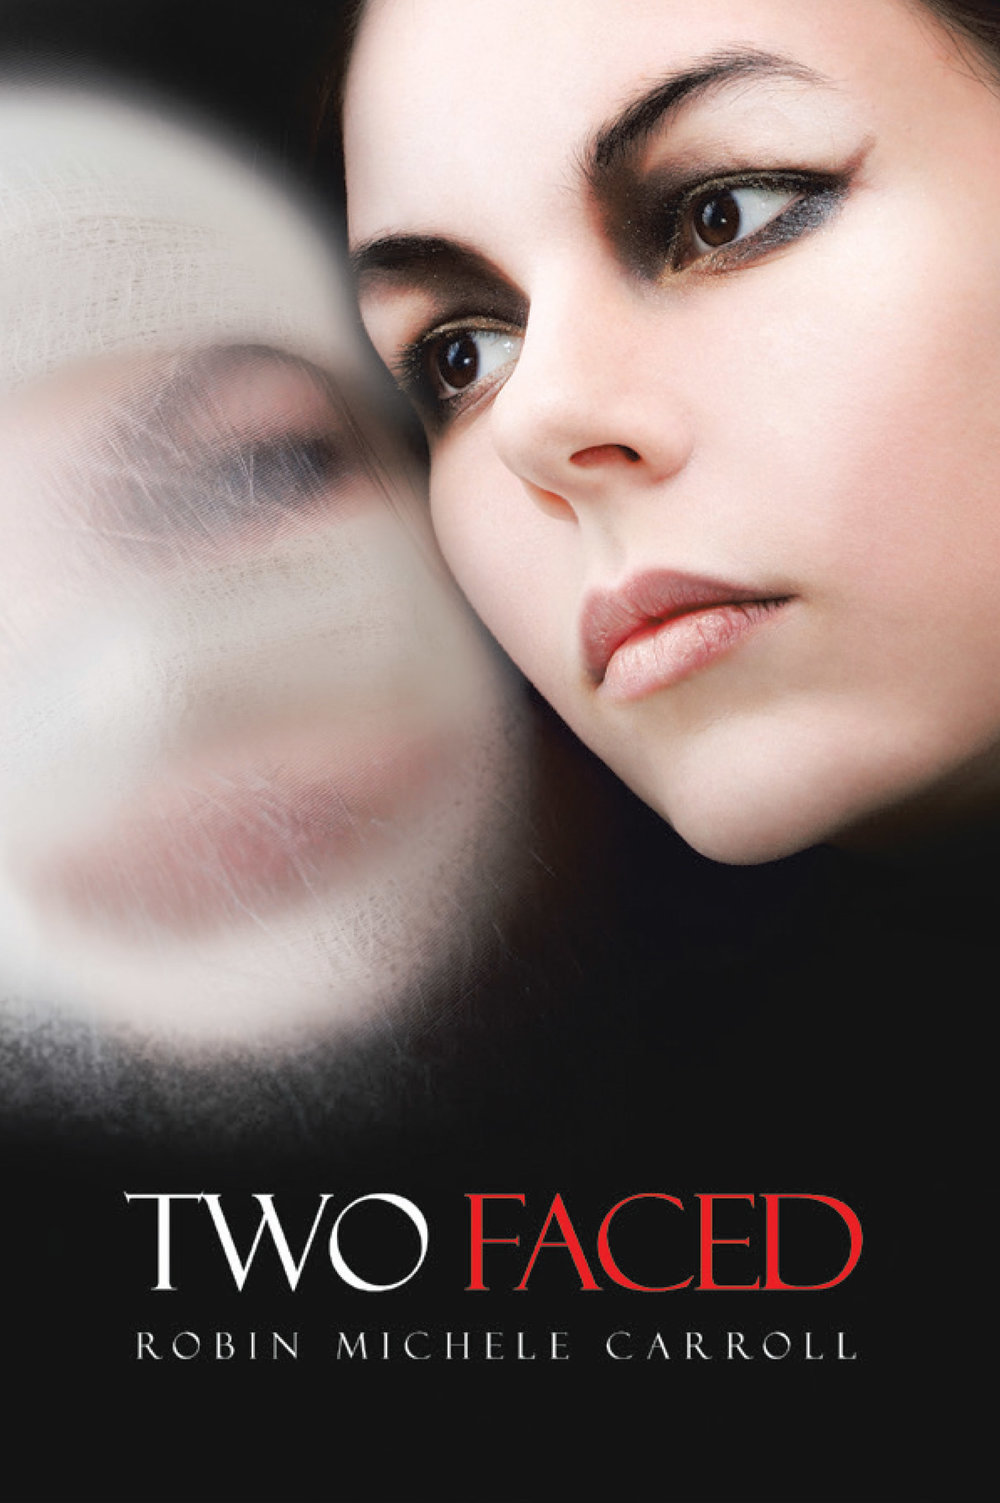 Front Cover Robins New Book Two Faced.jpg